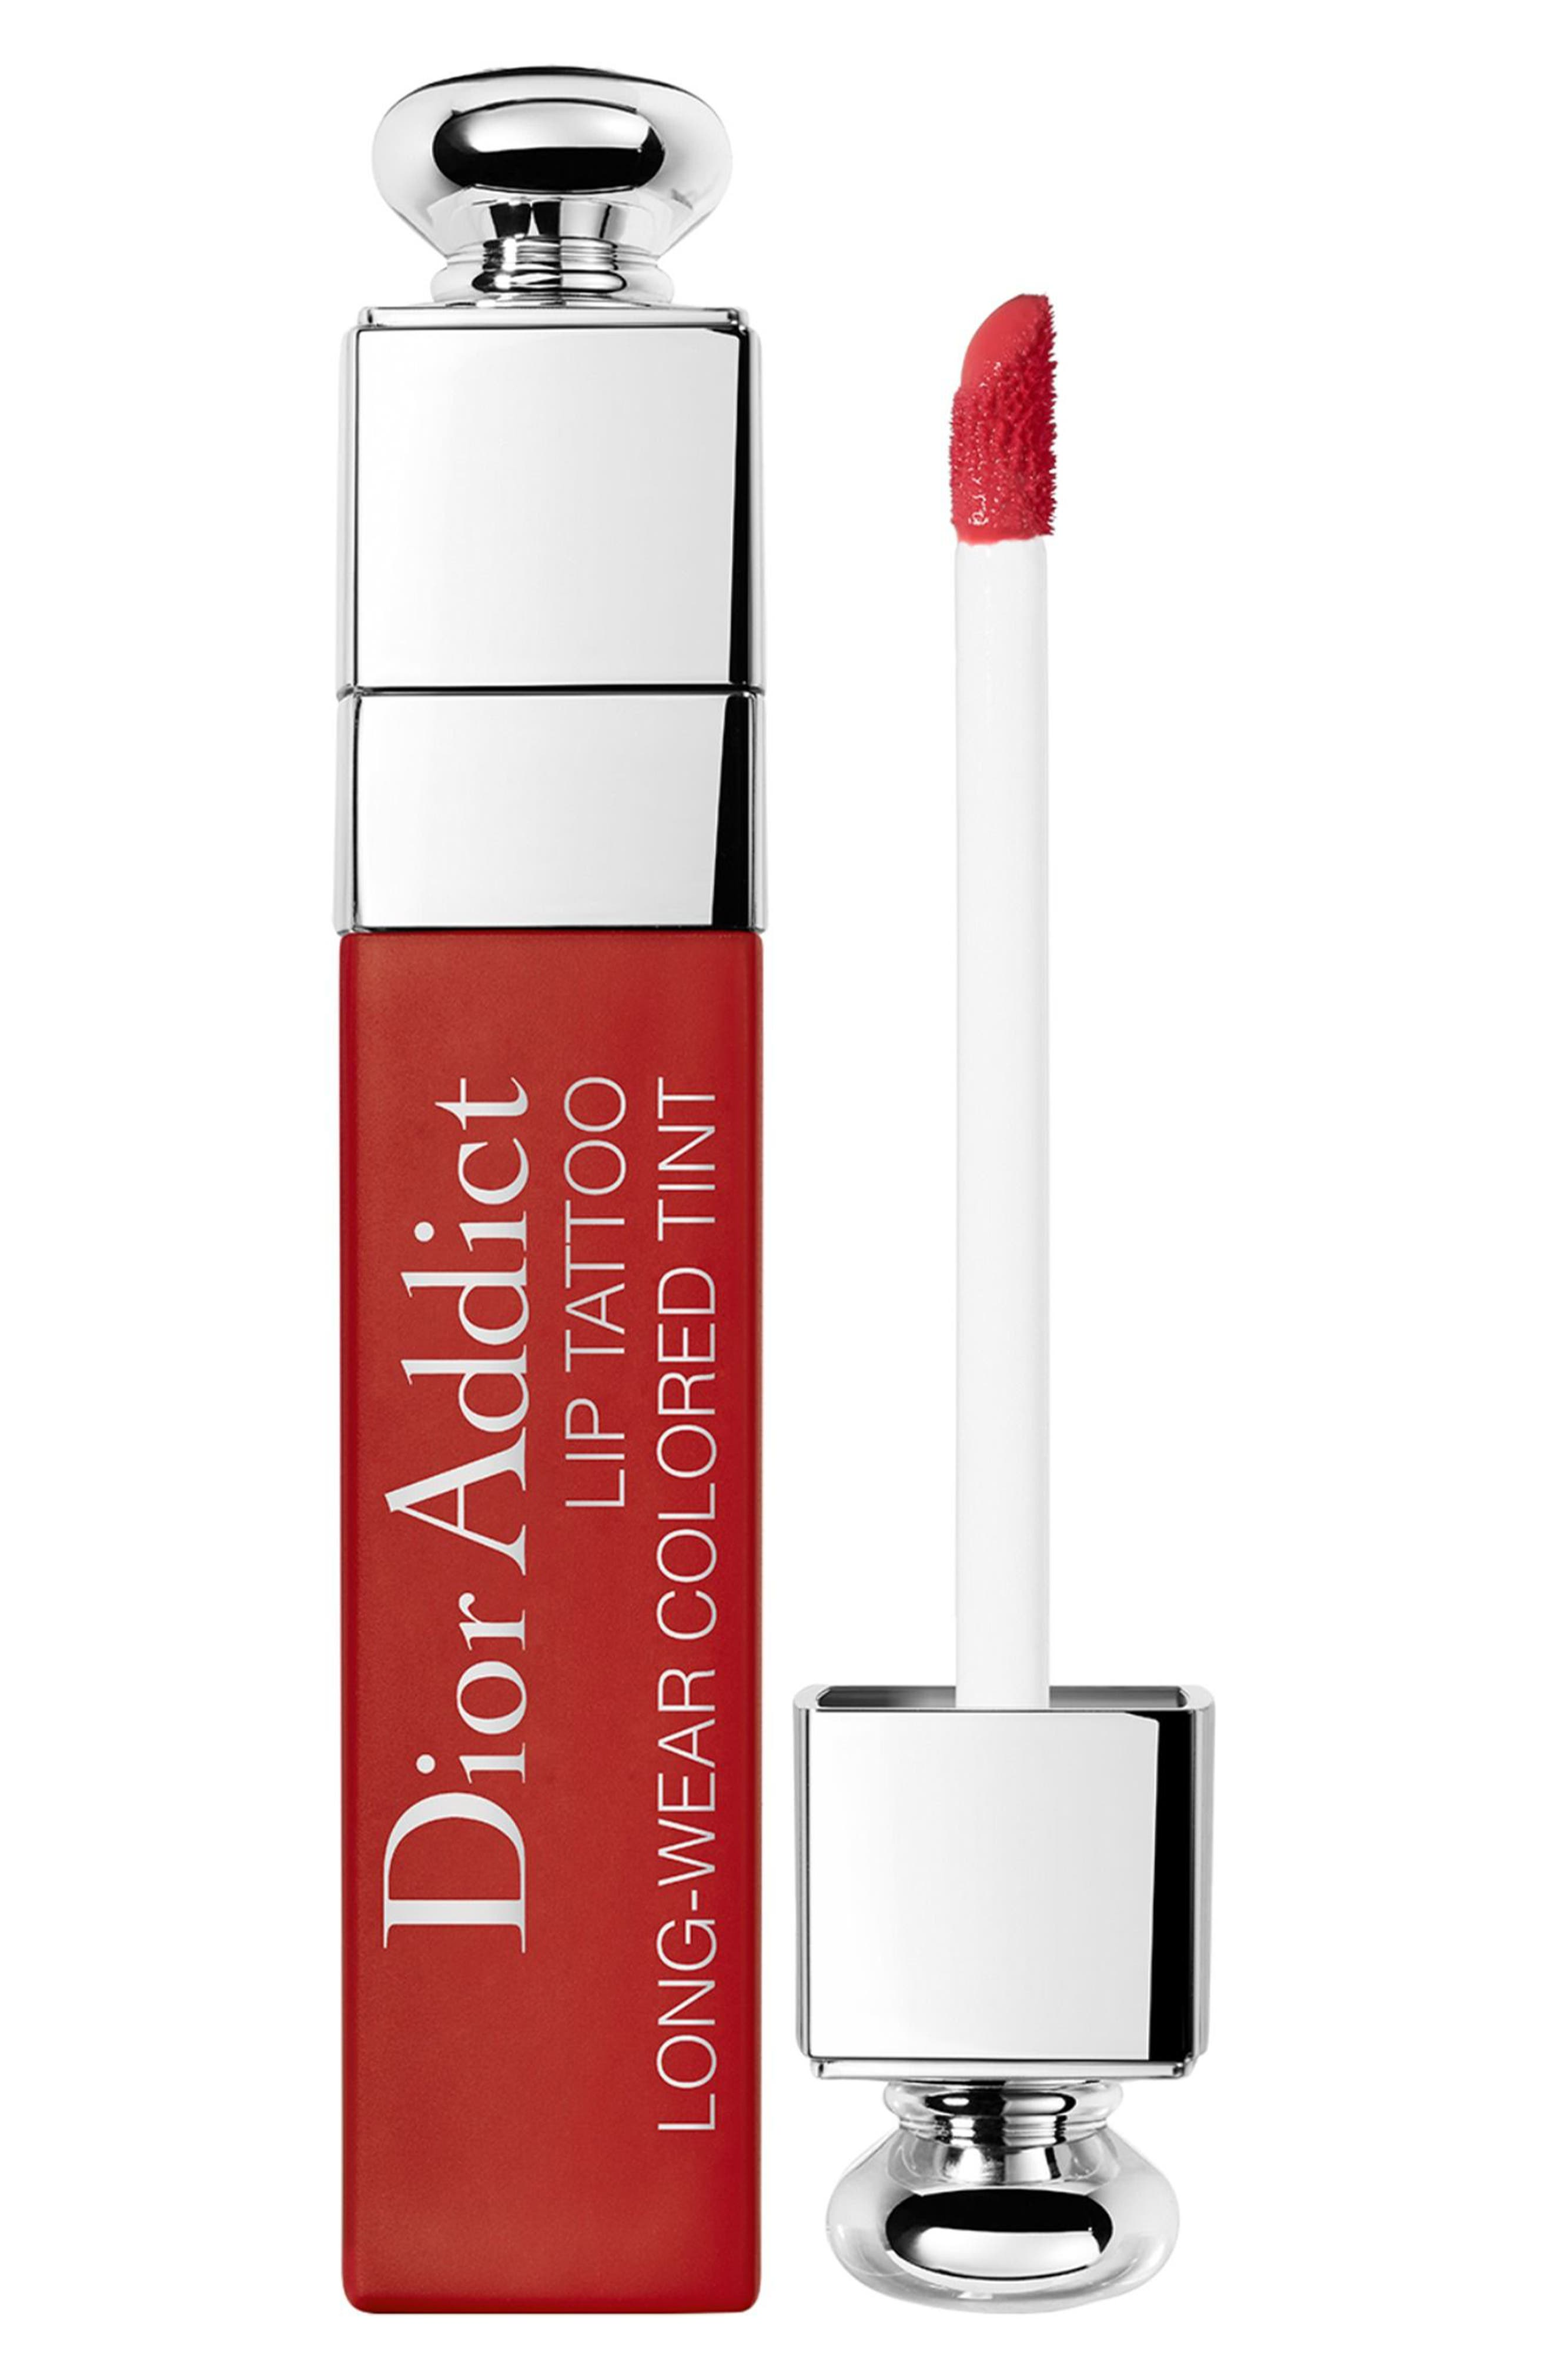 Dior Addict Lip Tattoo Long-Wearing Color Tint - 661 Natural Red